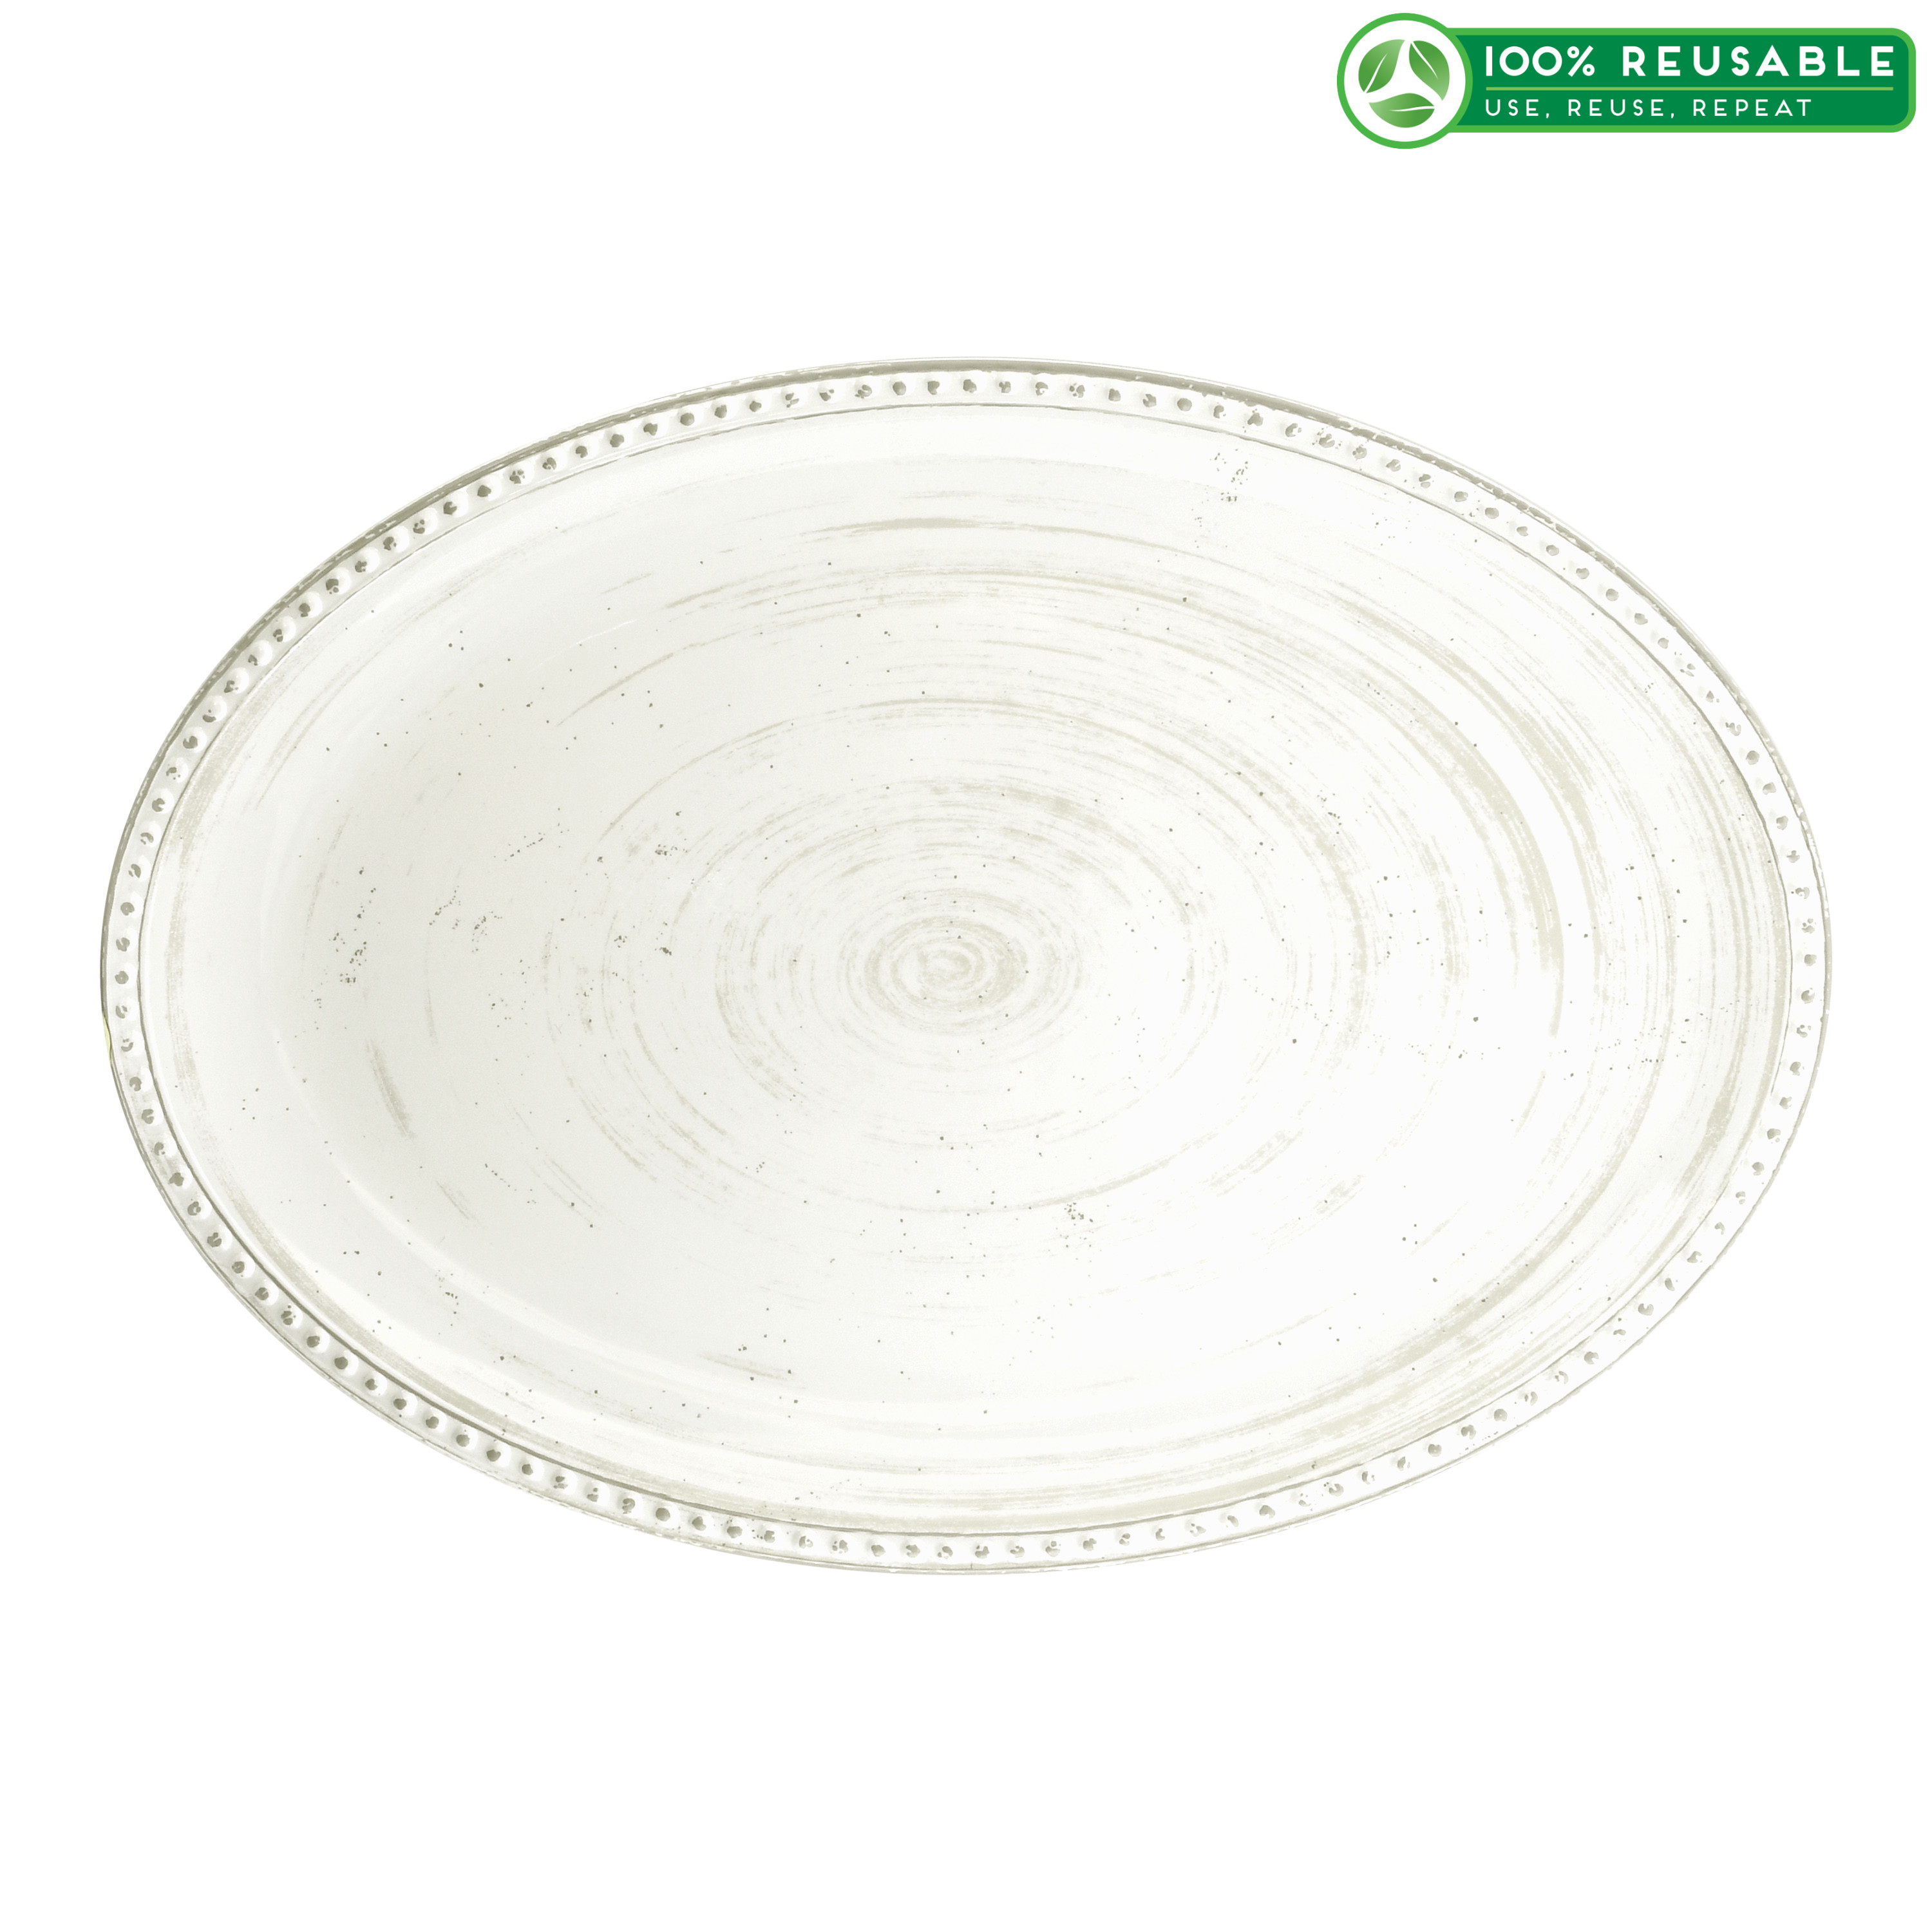 French Country Serving Tray, Oyster slideshow image 1